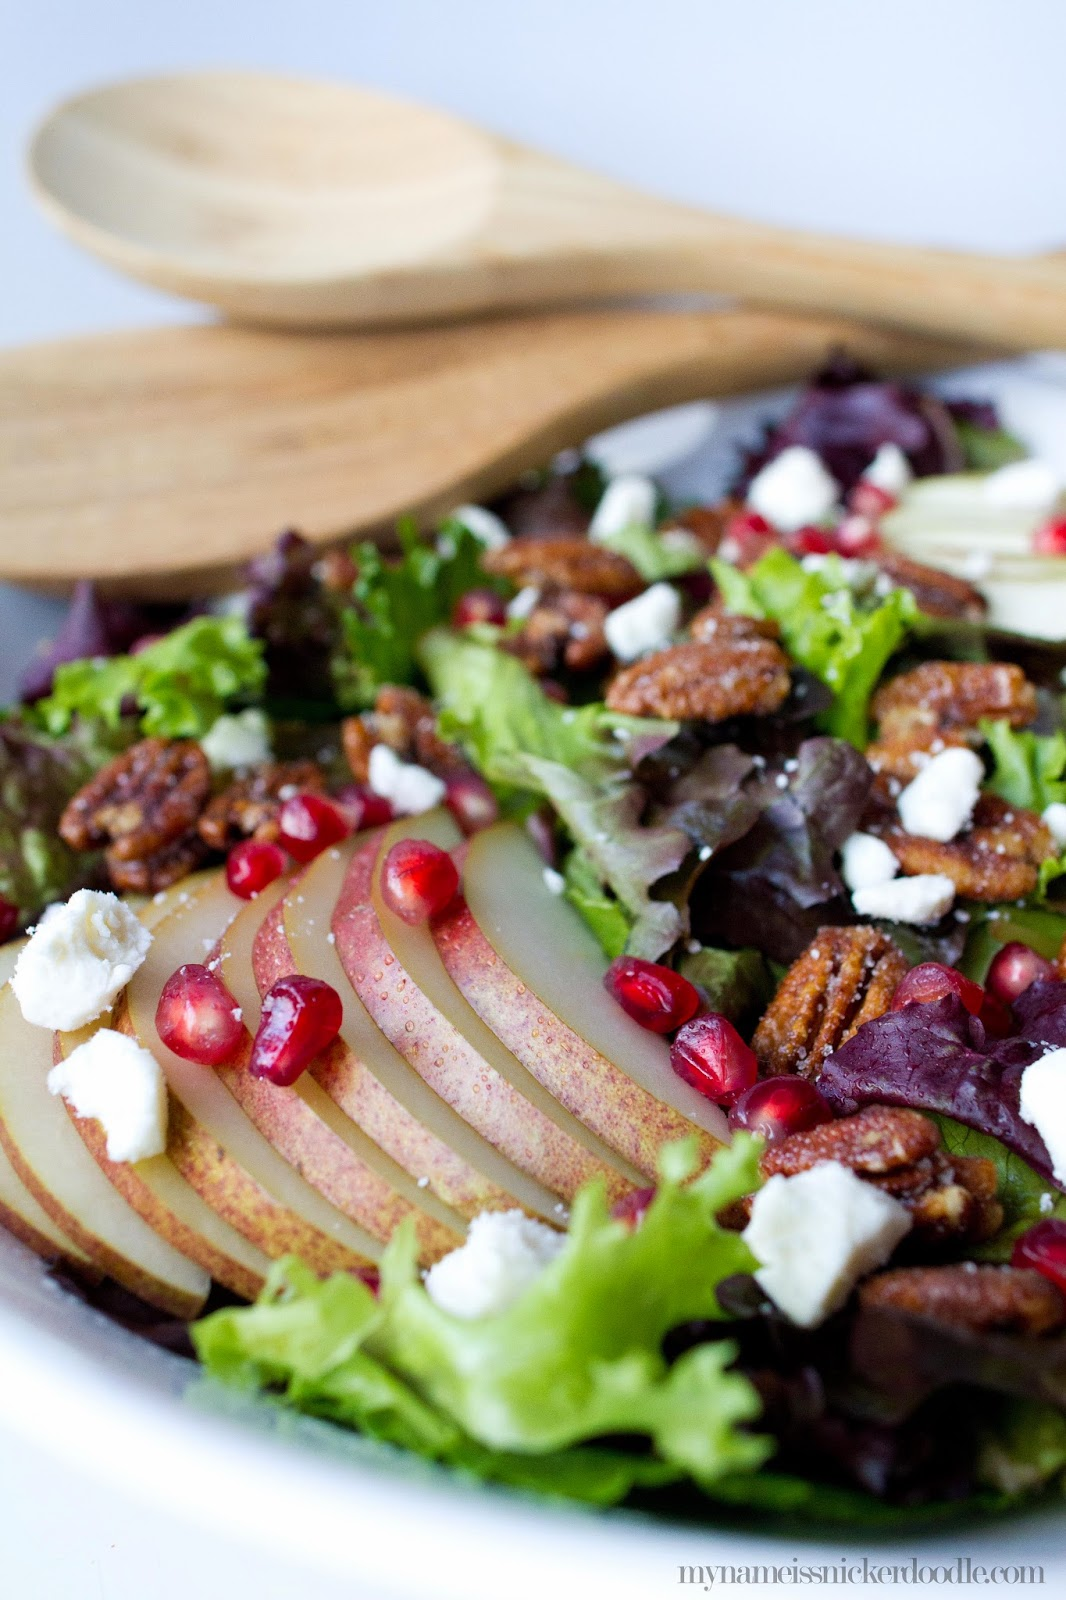 Sweet & Spicy Pecan and Pear Salad... complete with pomegranate seeds and feta cheese. The PERFECT healthy but filling salad to get you back into shape this new year!